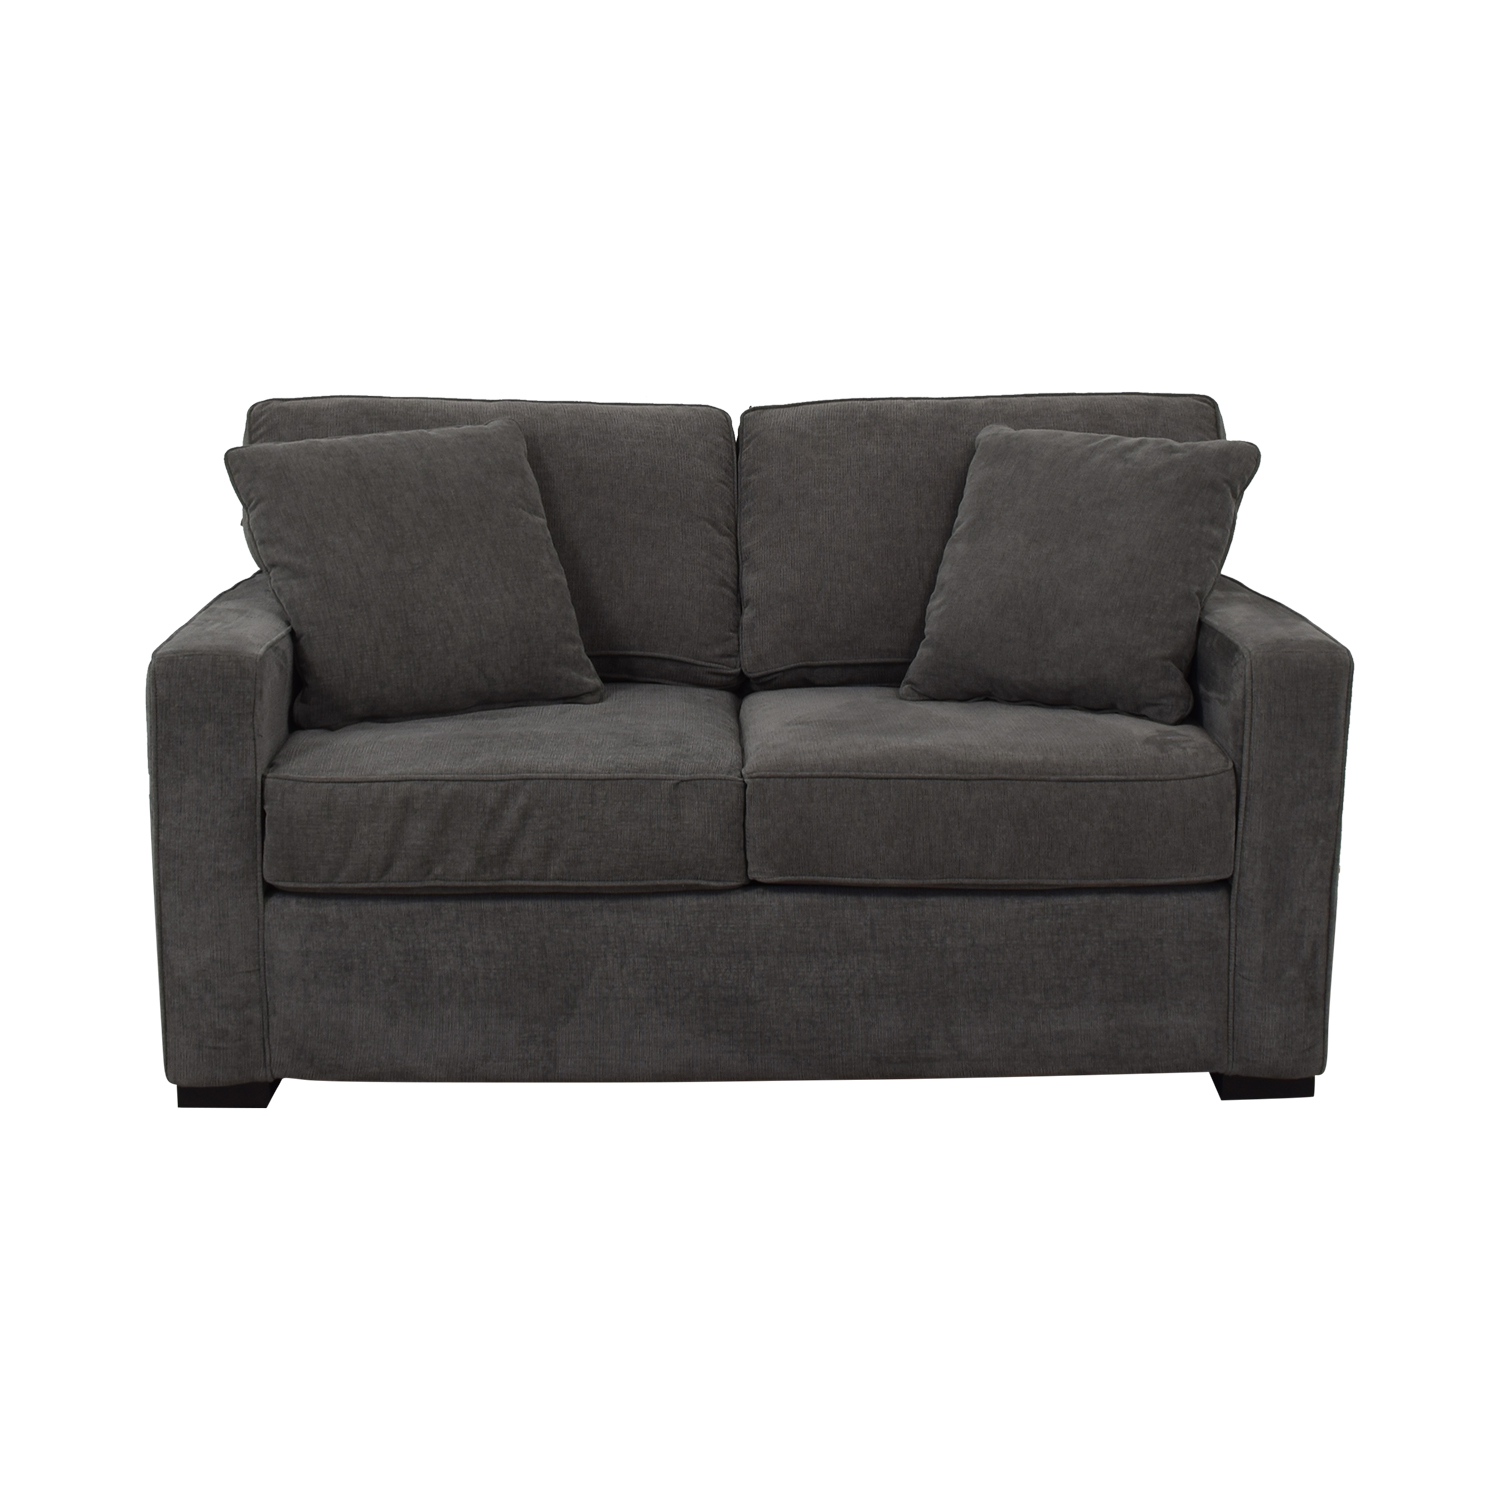 buy Macy's Grey Two-Cushion Loveseat Macy's Loveseats